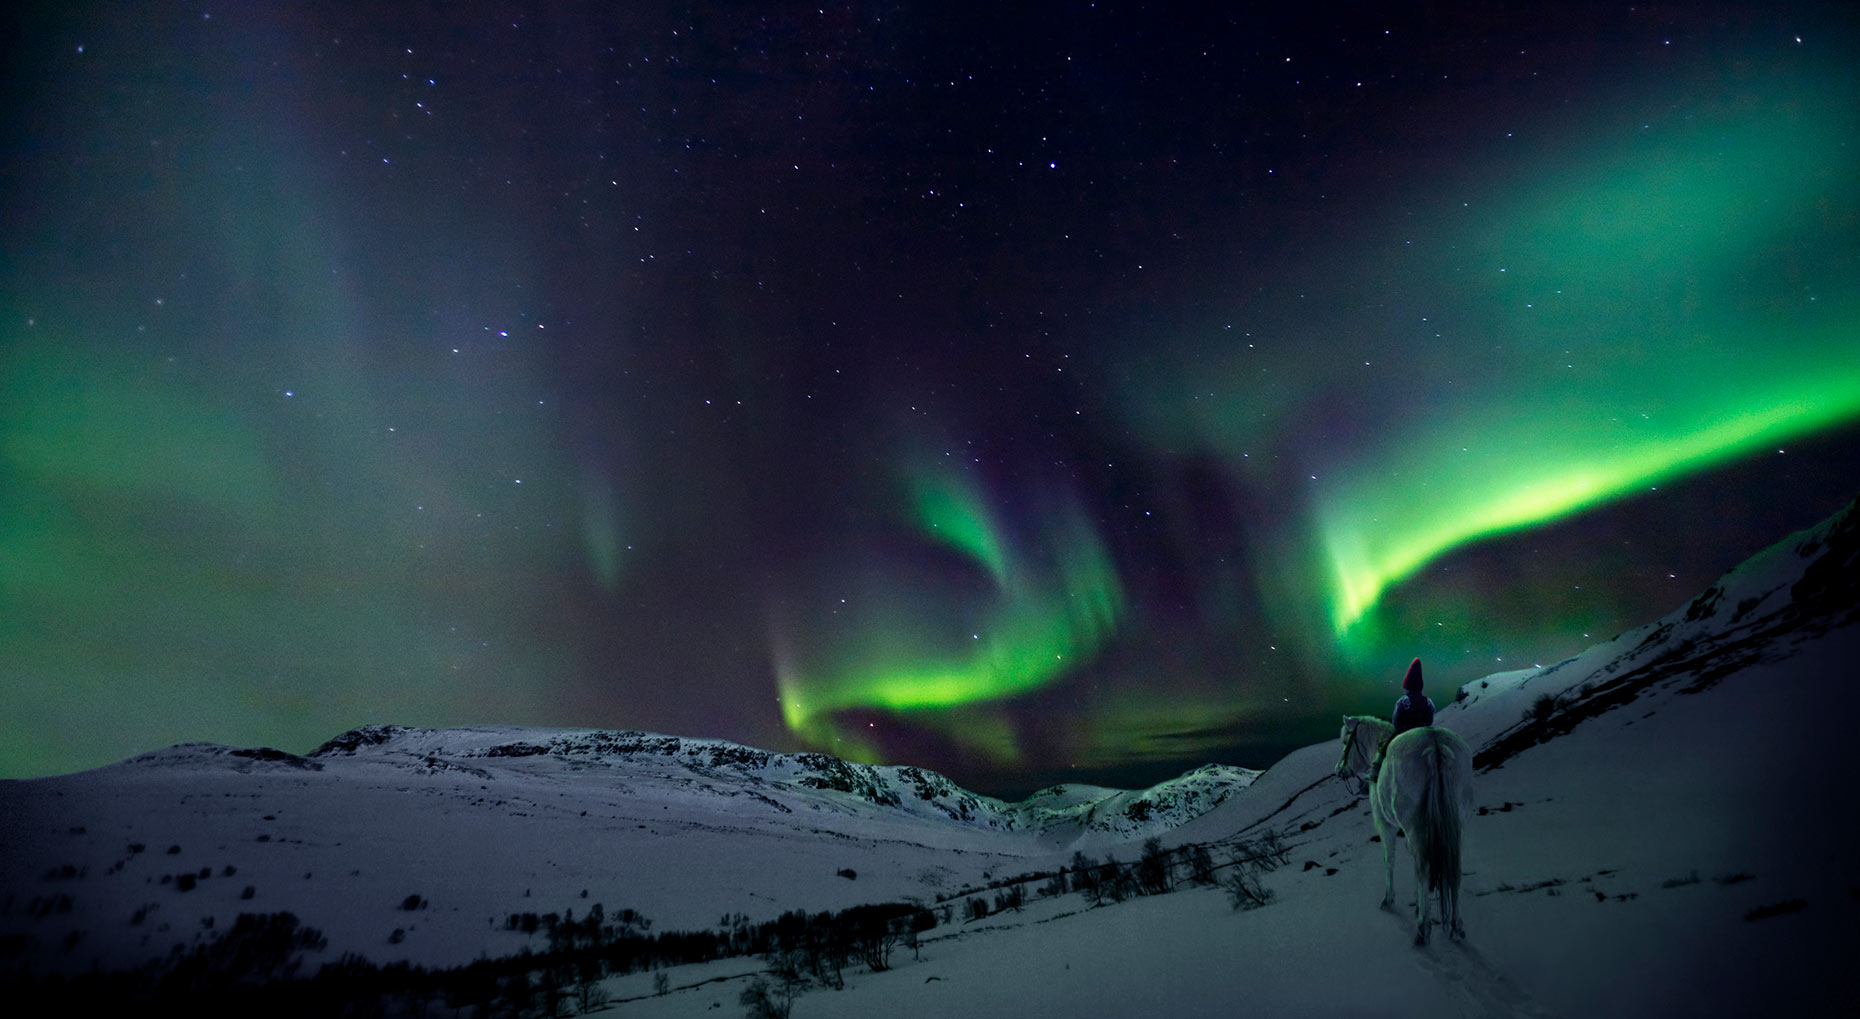 THE-NORTHERN-LIGHTS_THE-CHRISTMAS-WISH